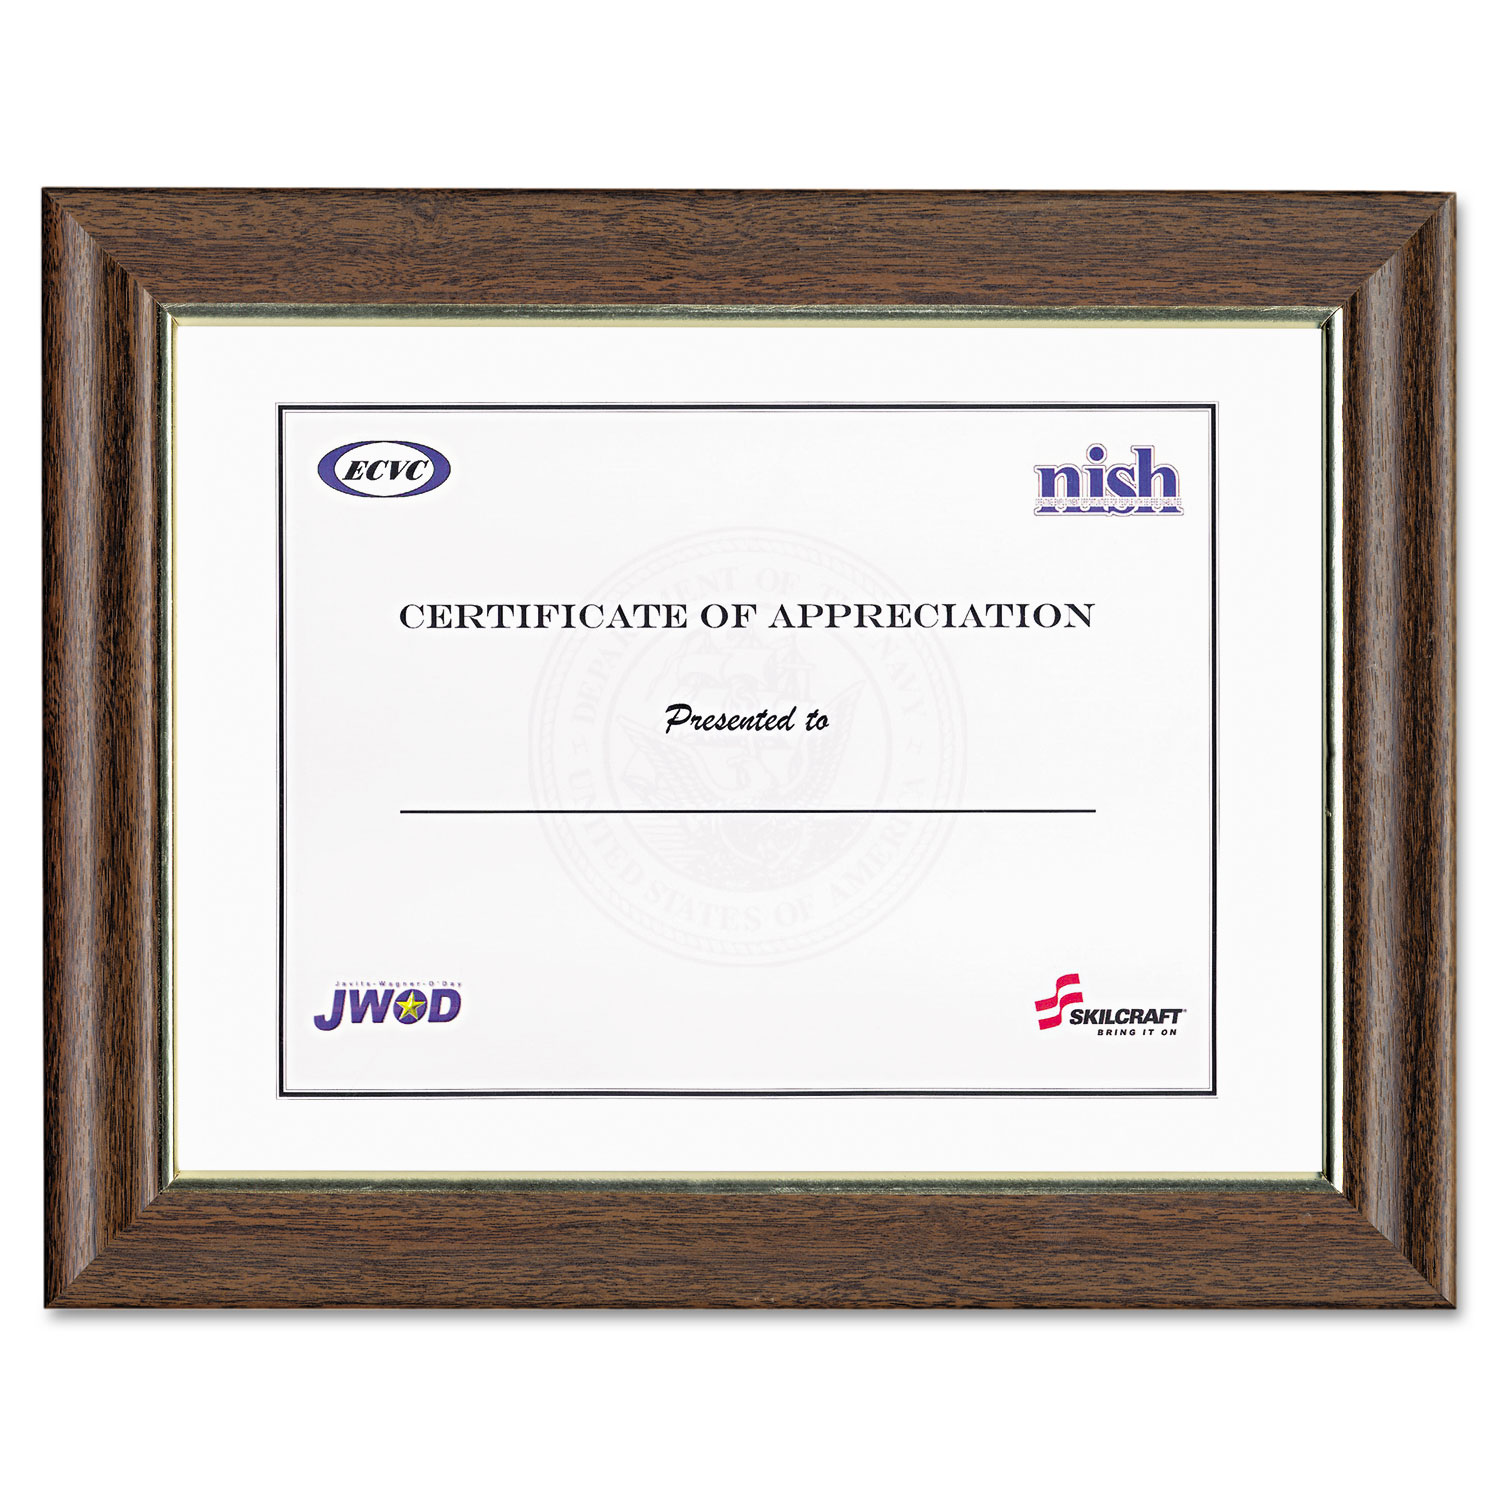 Style B Vinyl Documentcertificate Frame By Abilityone Nsn9031843